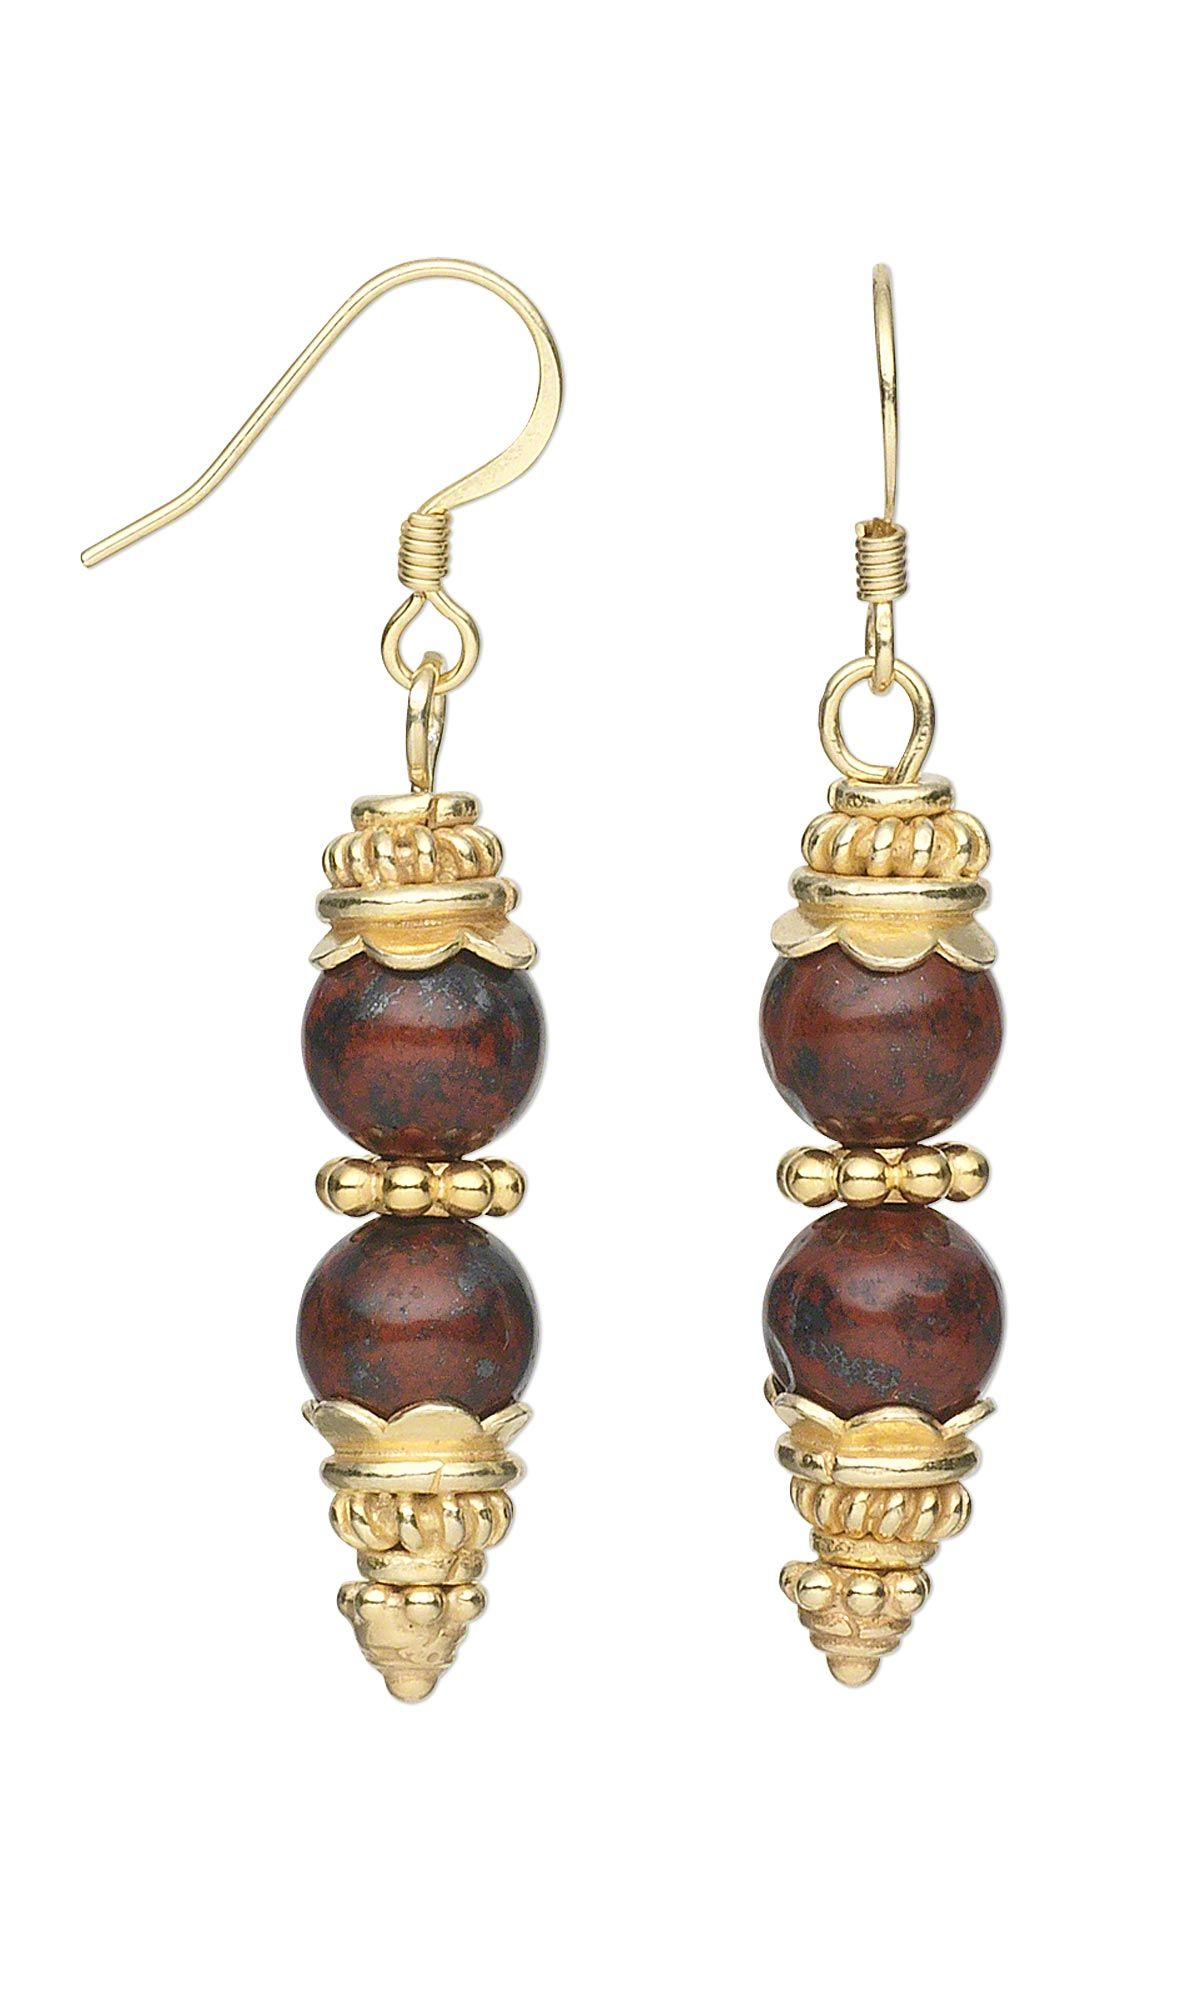 Jewelry Design - Earrings with Brecciated Jasper Gemstone Beads and ...